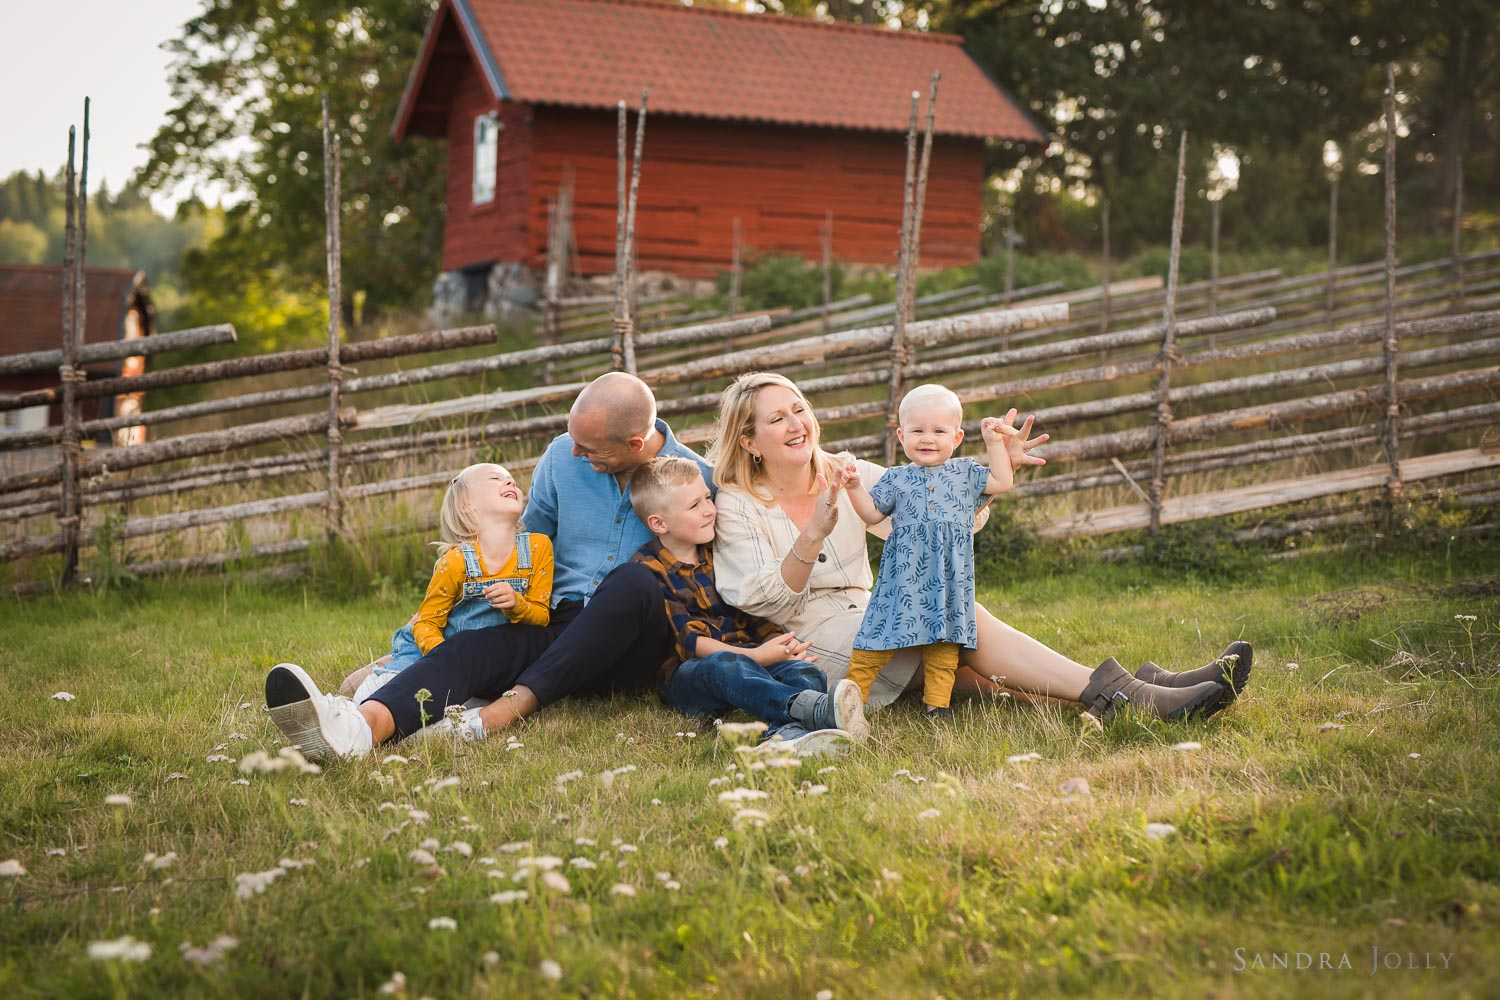 family-outdoor-summer-photo-session-stockholm-by-familjefotograf-sandra-jolly.jpg